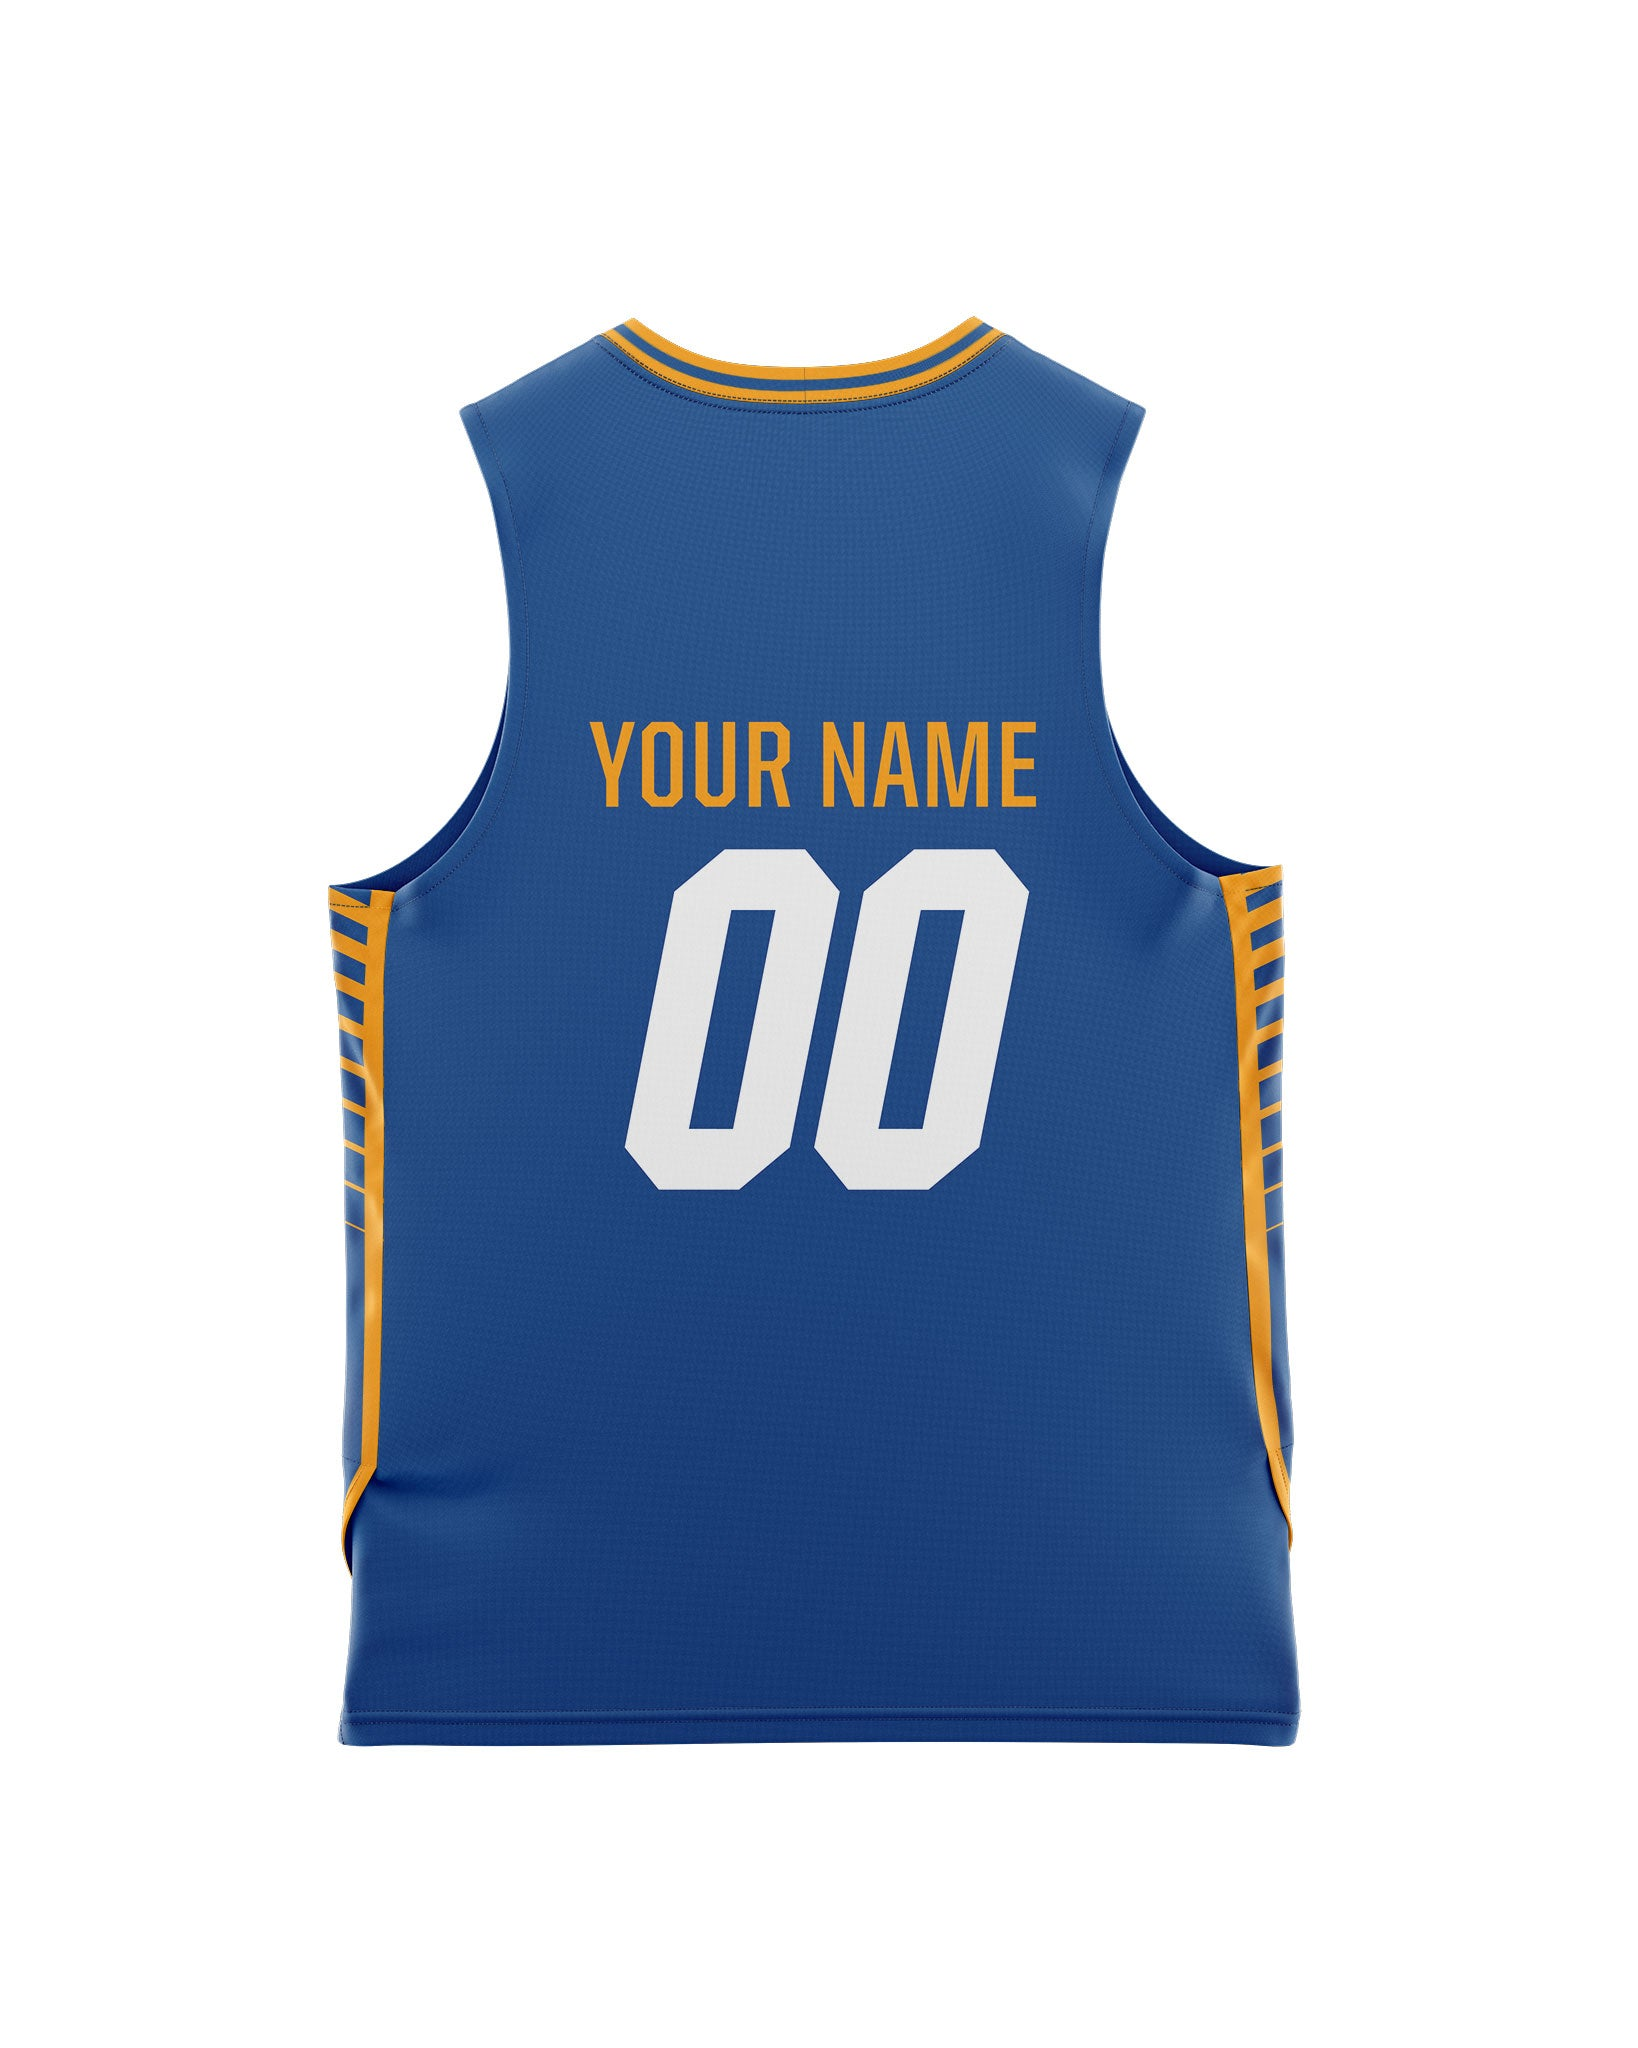 Brisbane Bullets 20/21 Youth Authentic Home Jersey - Personalised